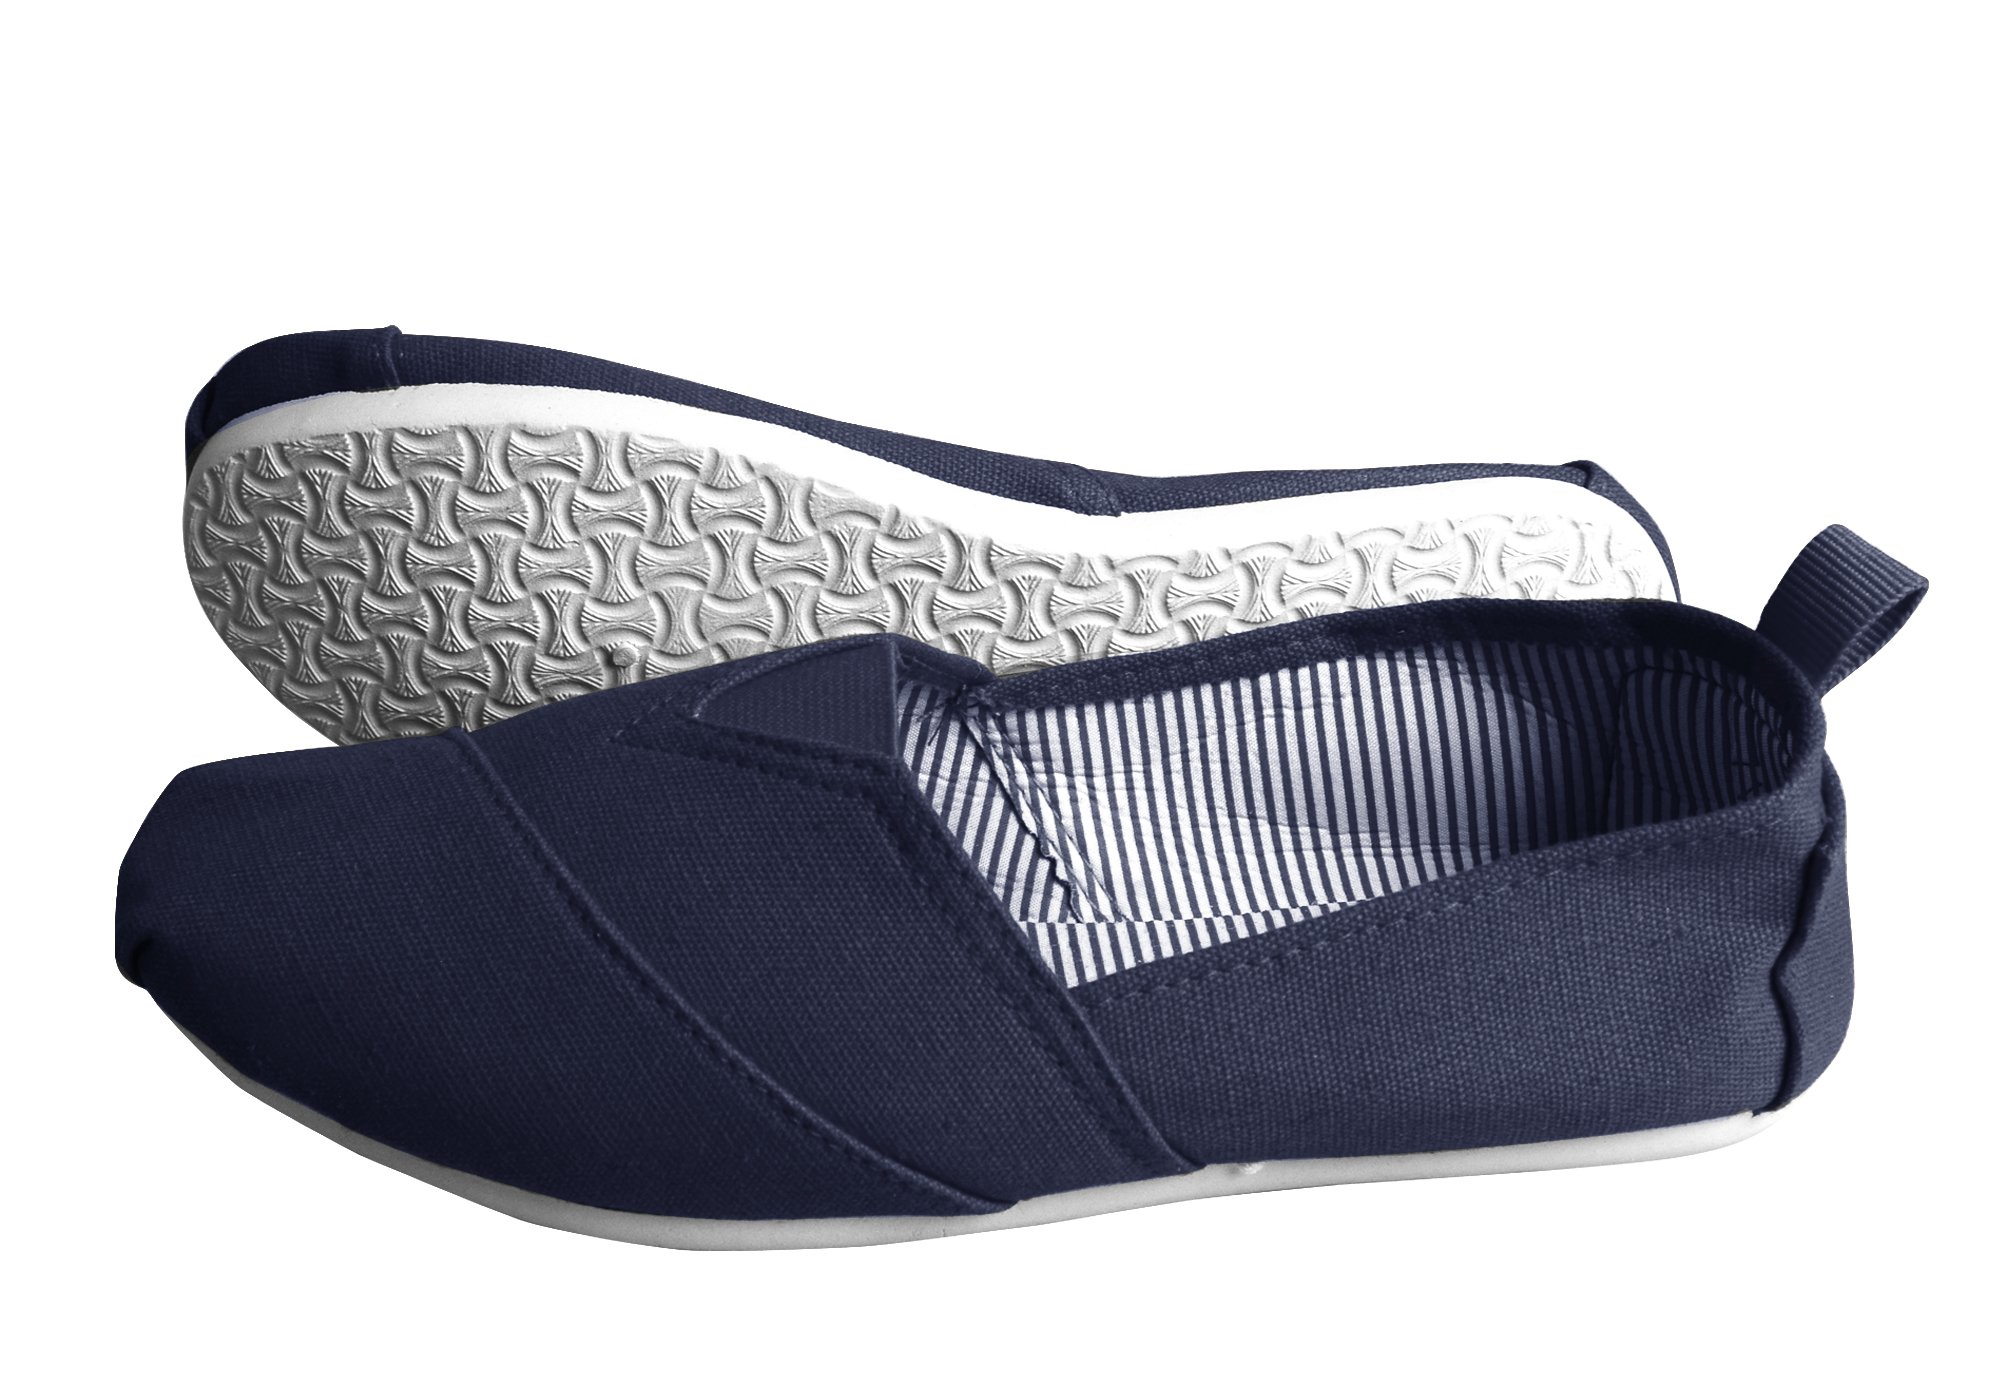 Peach Couture Striped Casual Summer Breathable Tennis Slip On Loafer Sneaker Shoes Blue 7